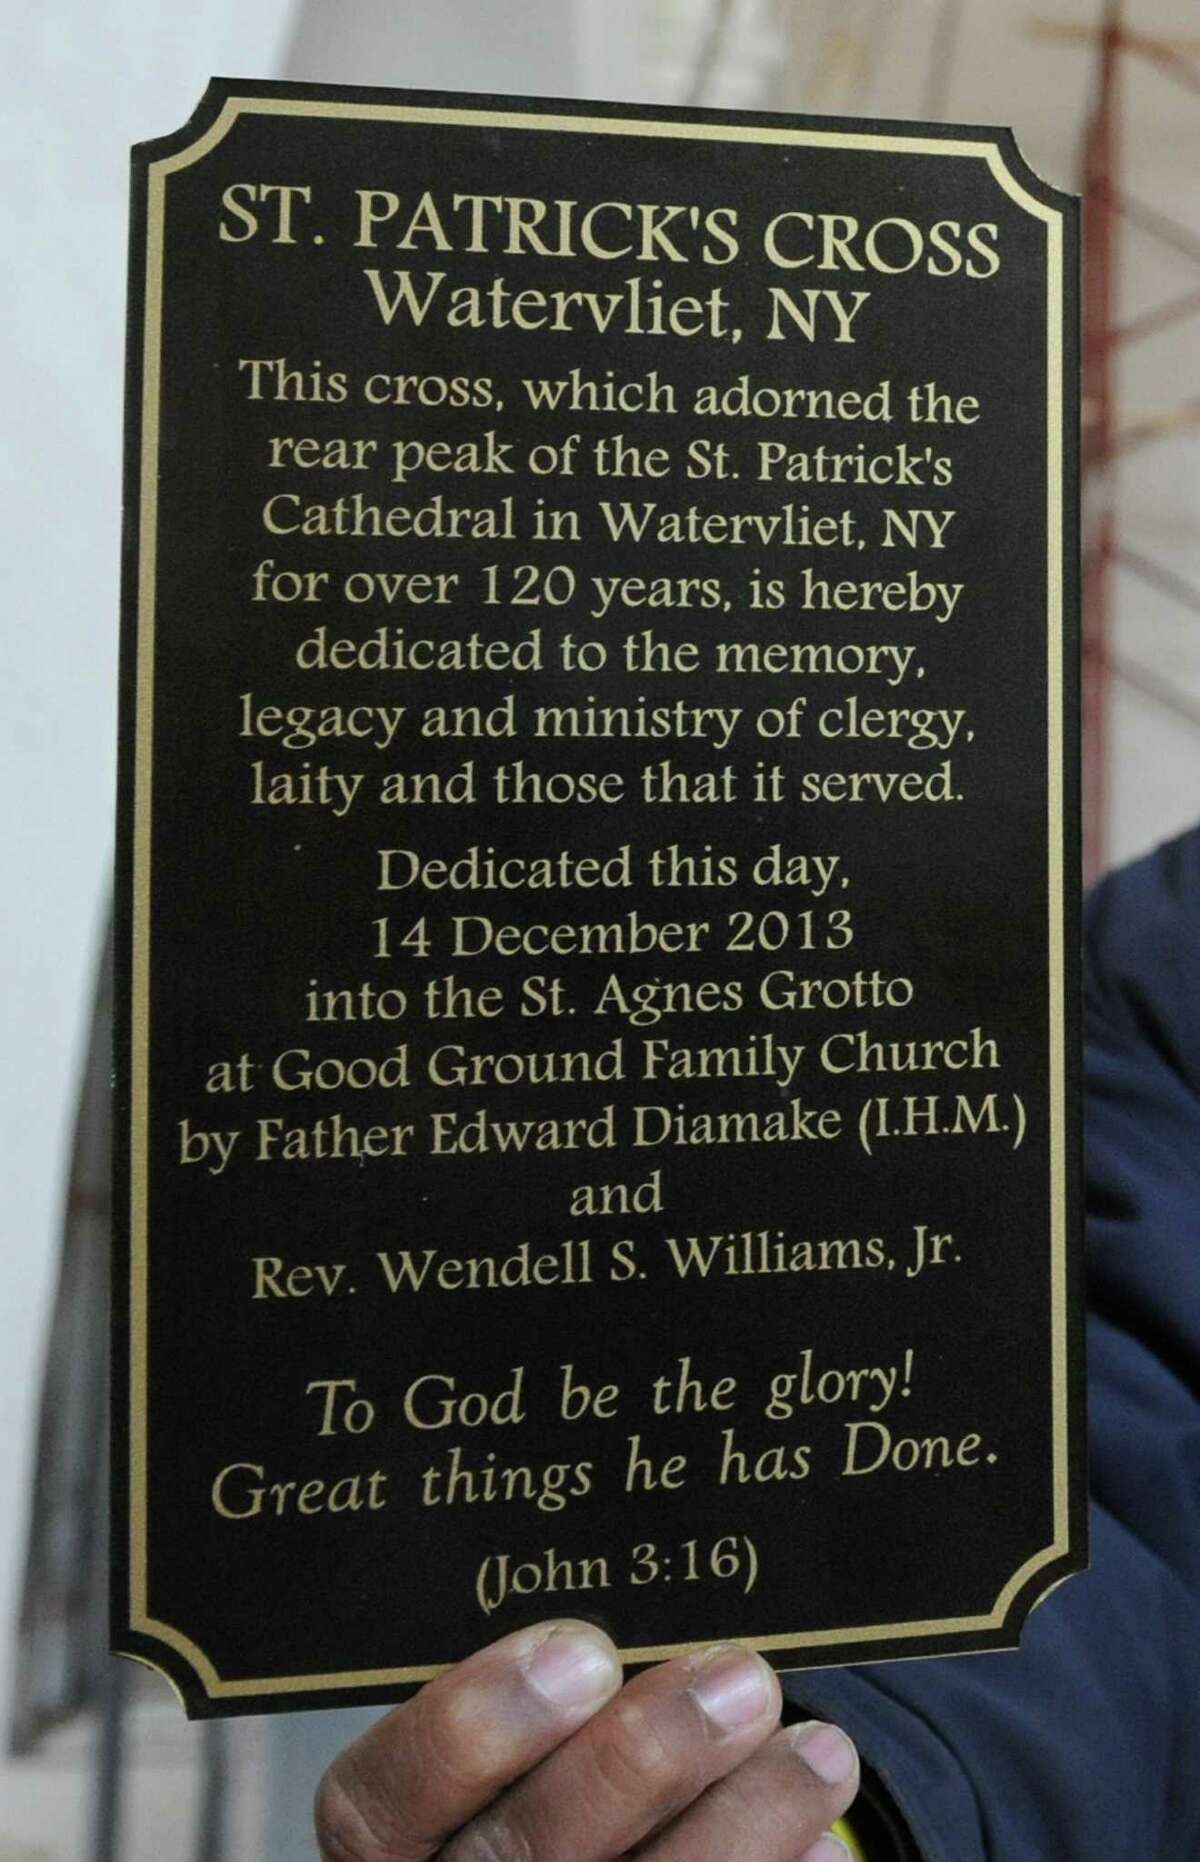 Pastor Wendell Williamson holds a dedication plaque that will be glued to the base of the cross in the former St. Agnes grotto outside the Good Ground Family Church on Wednesday, Dec. 18, 2013, in Cohoes N.Y. The cross came from the rear peak of the St. Patrick's cathedral in Watervliet. (Lori Van Buren / Times Union)